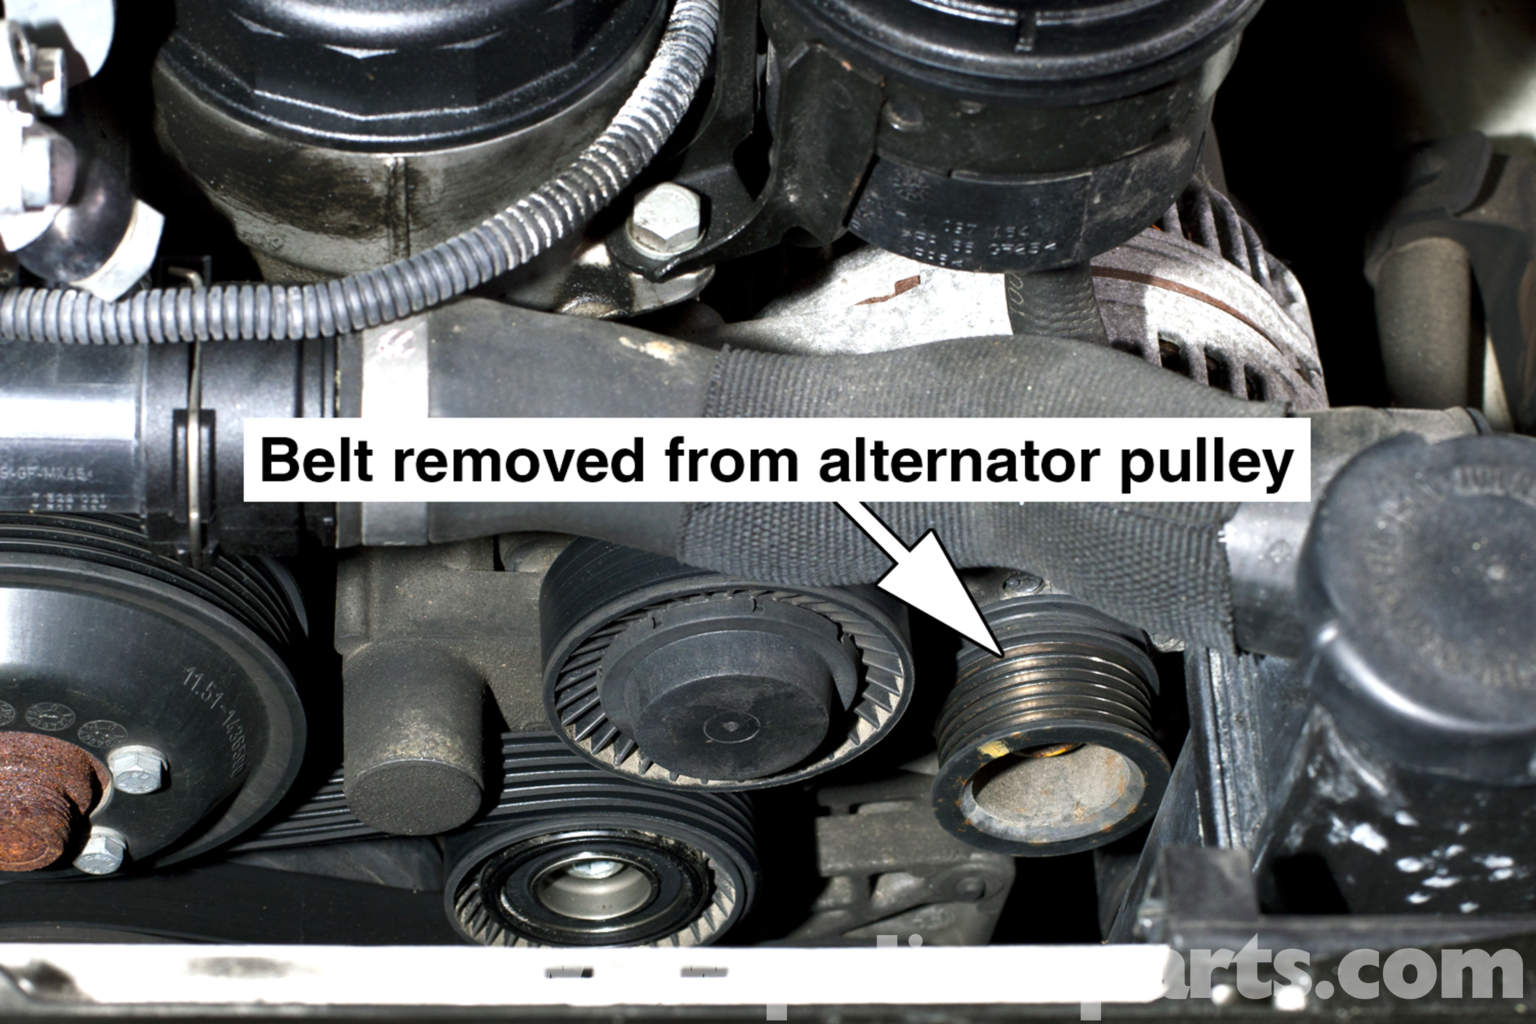 BMW Convertible 1994 bmw 325i oil type BMW E46 Alternator Replacement | BMW 325i (2001-2005), BMW 325Xi ...